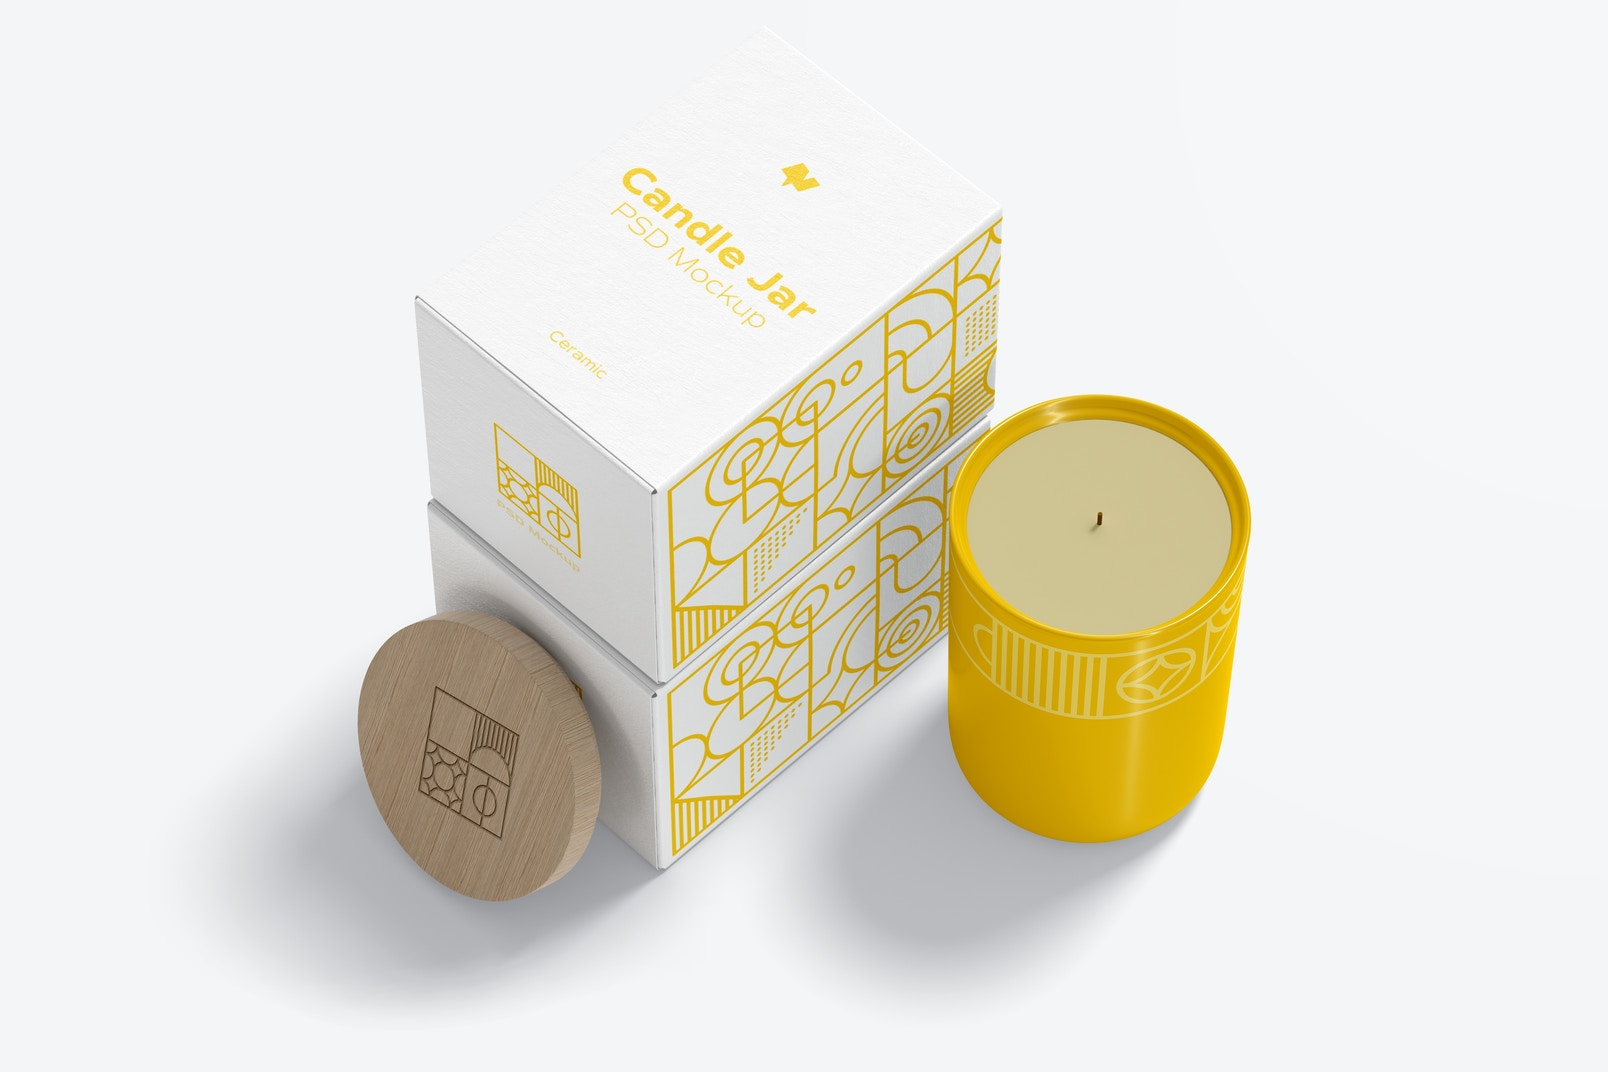 Ceramic Candle Jar with Boxes Mockup, Perspective View